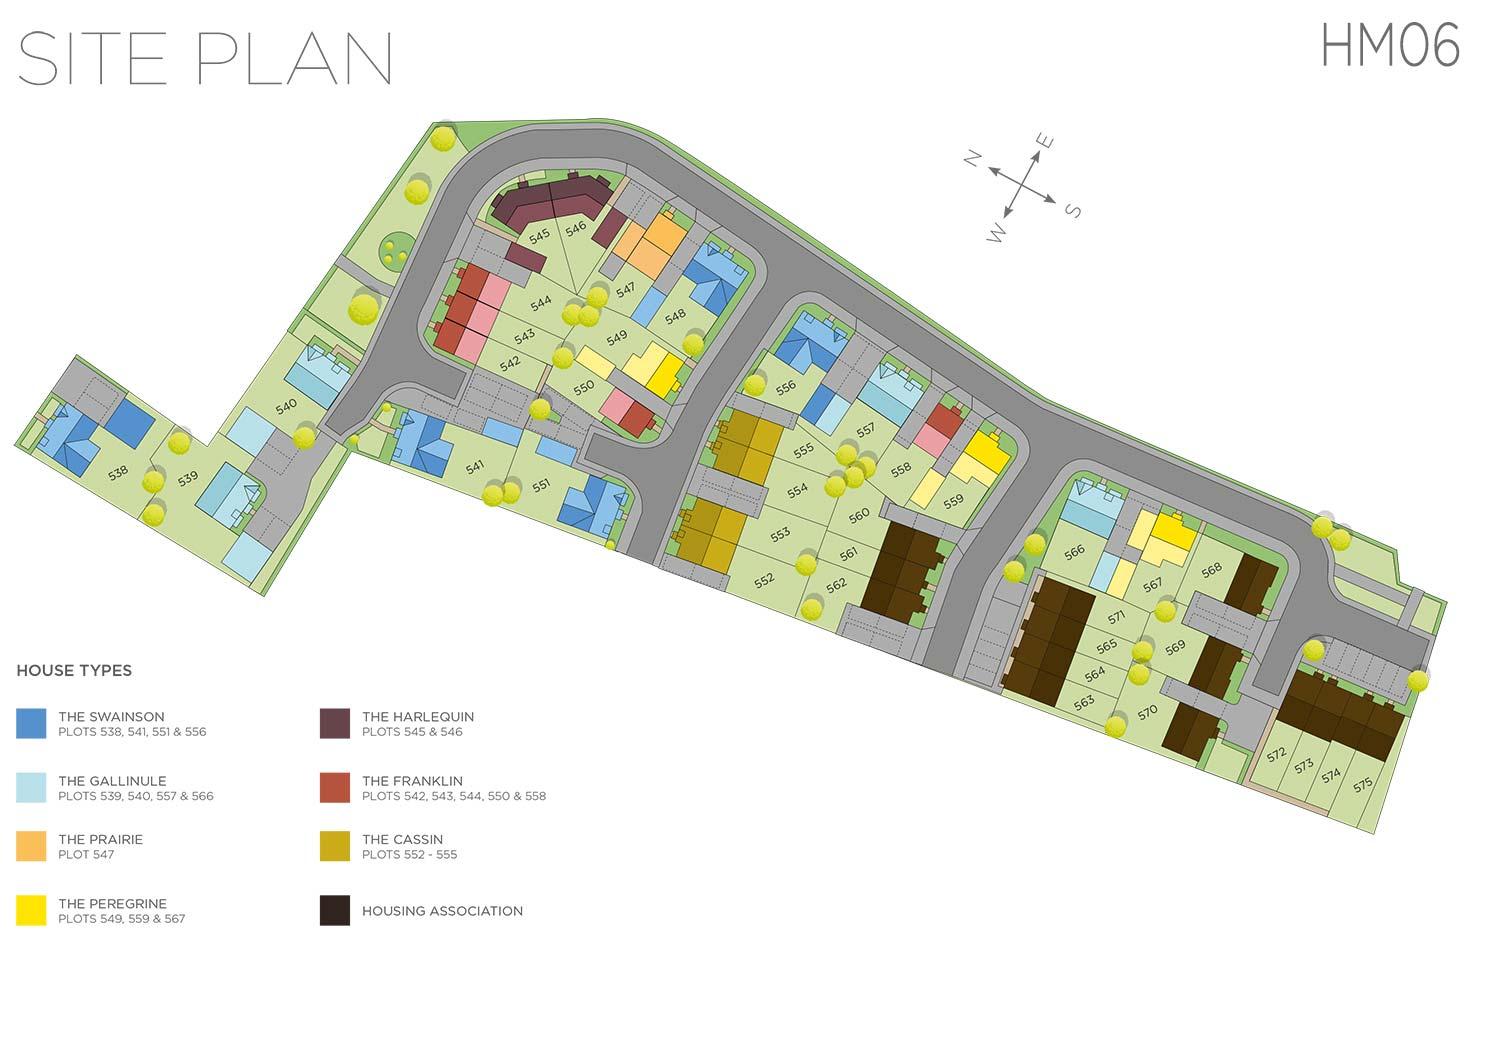 Coming Soon! Our brand new phase at Kingsfield Park! Siteplan